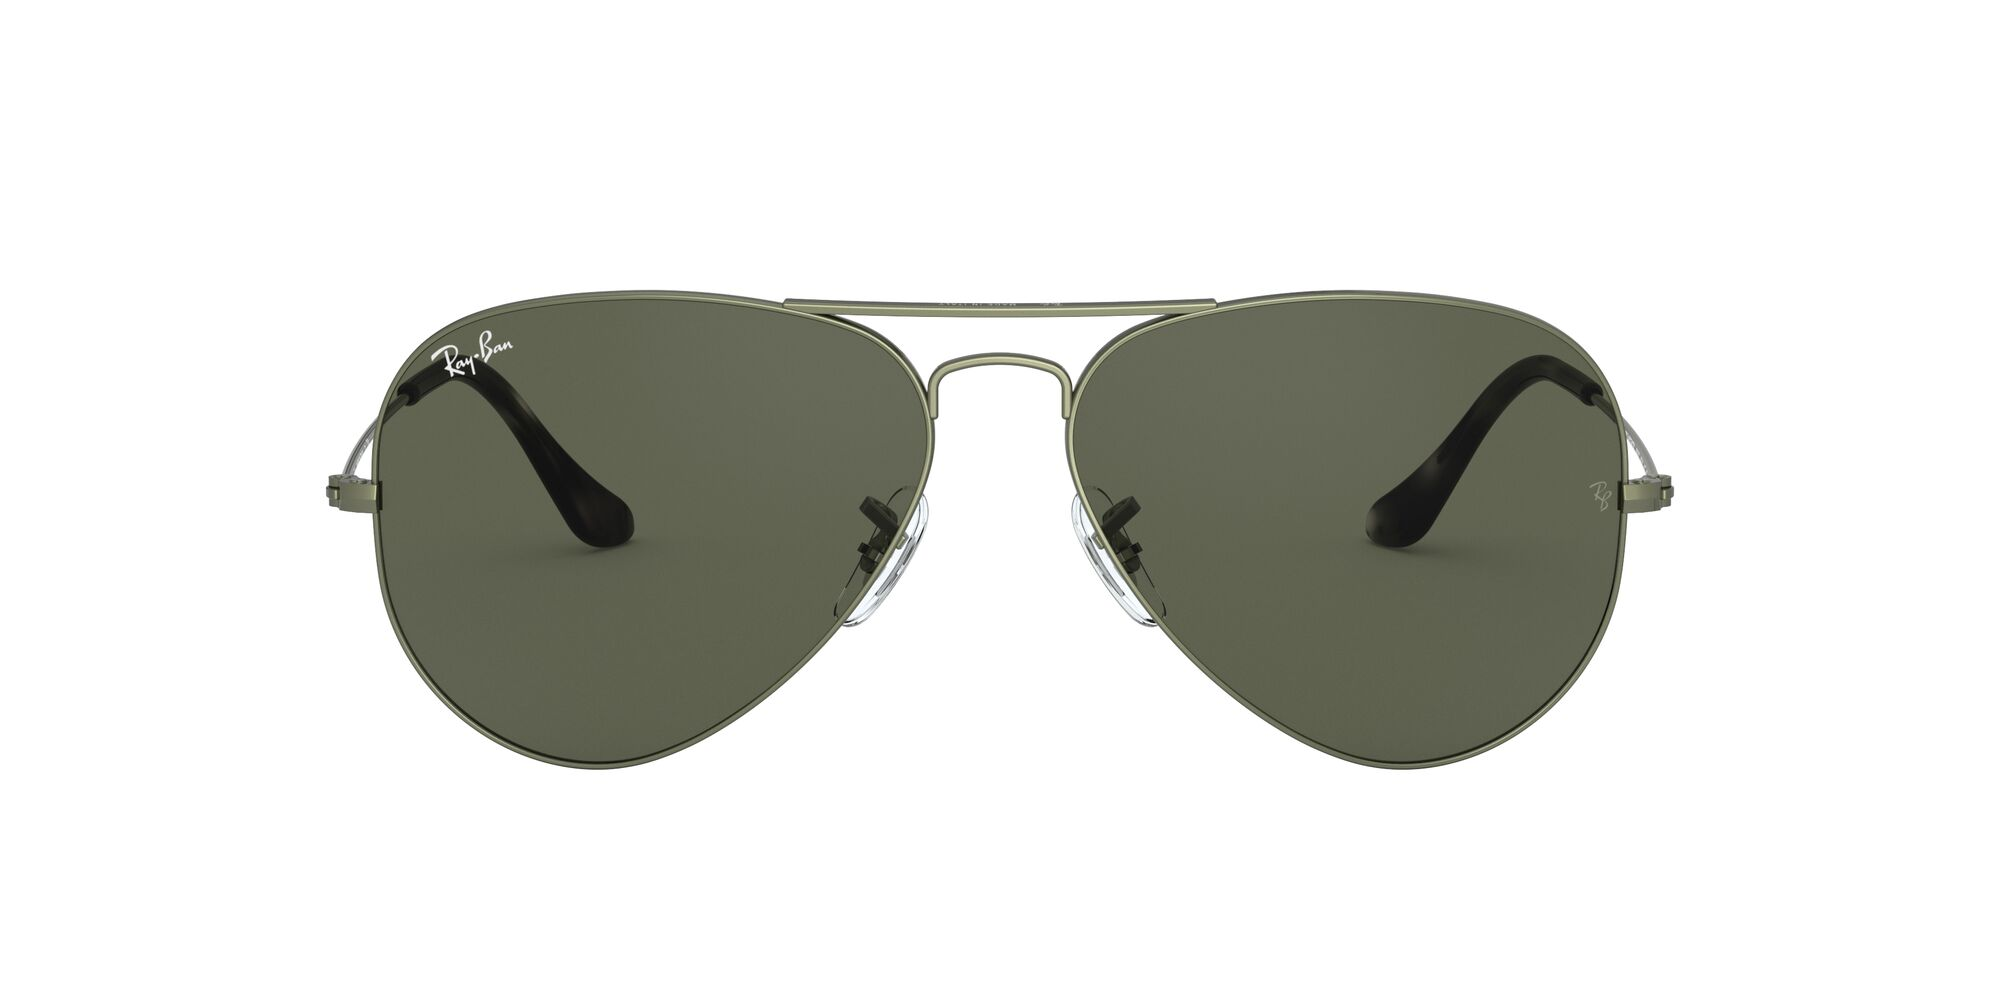 Front Ray-Ban Ray-Ban 0RB3025 919131 62/14 Beige, Green/Groen